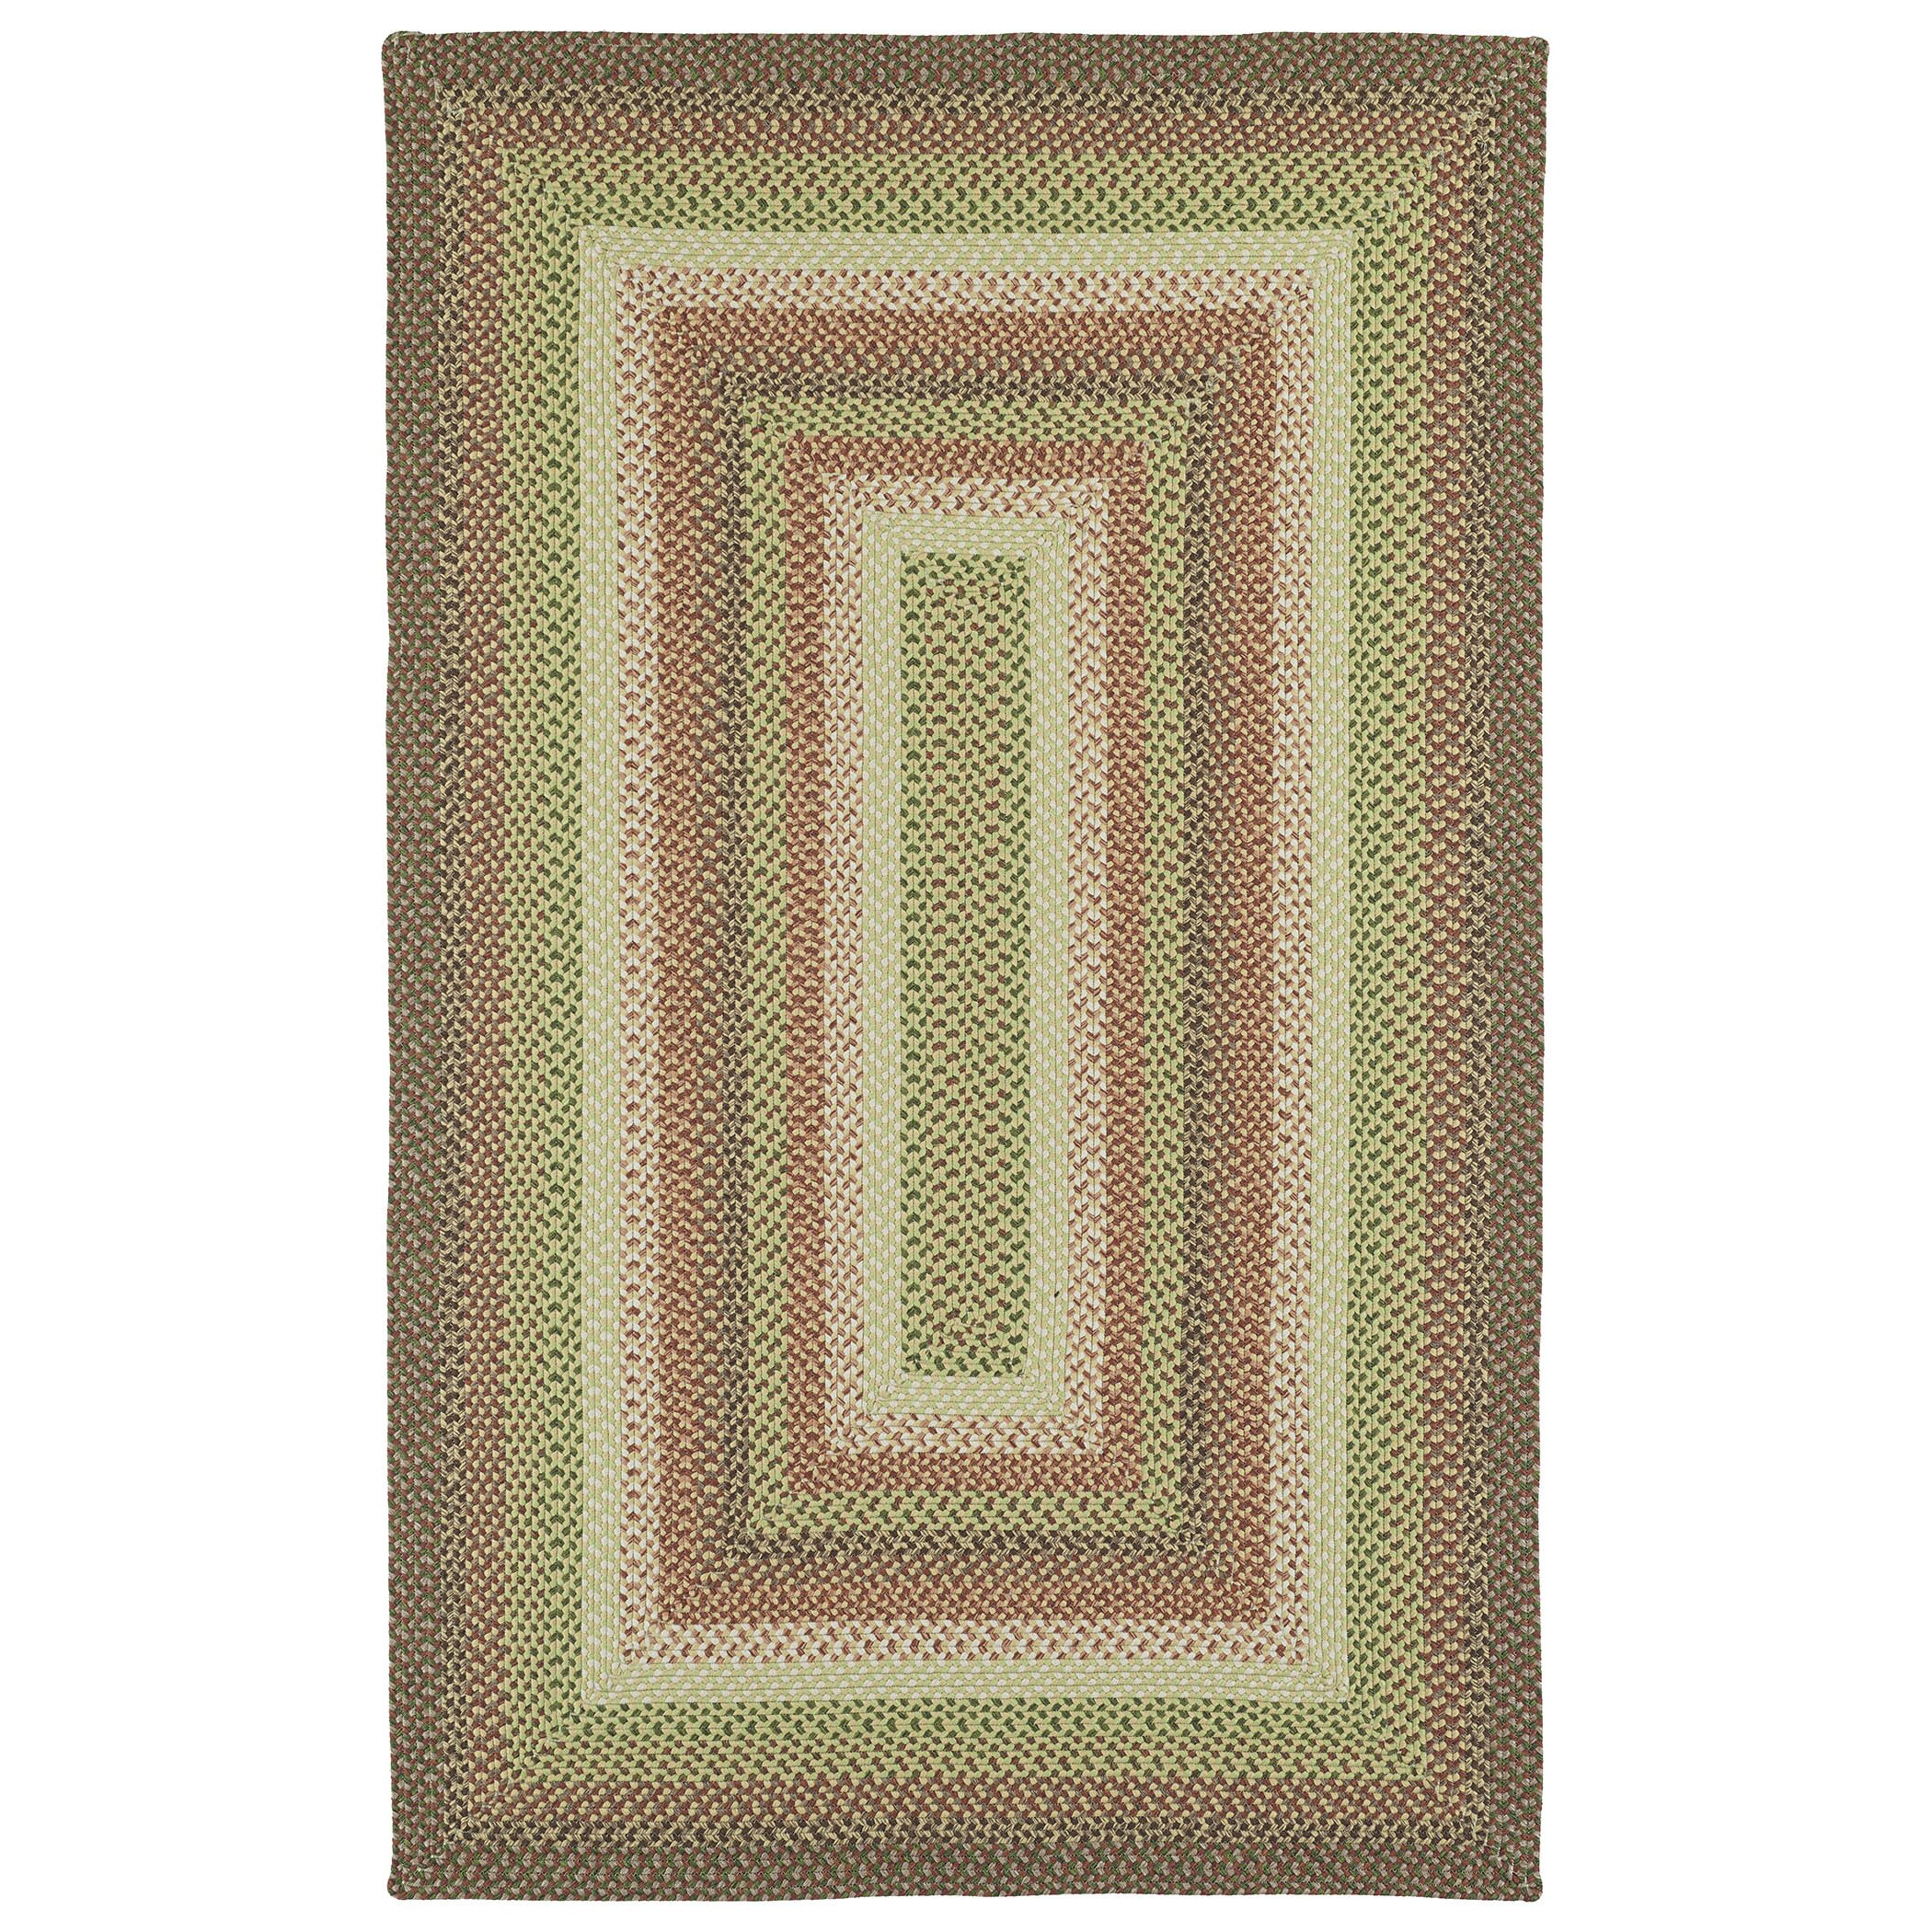 Kaleen Bimini Sage Indoor Outdoor Area Rug & Reviews